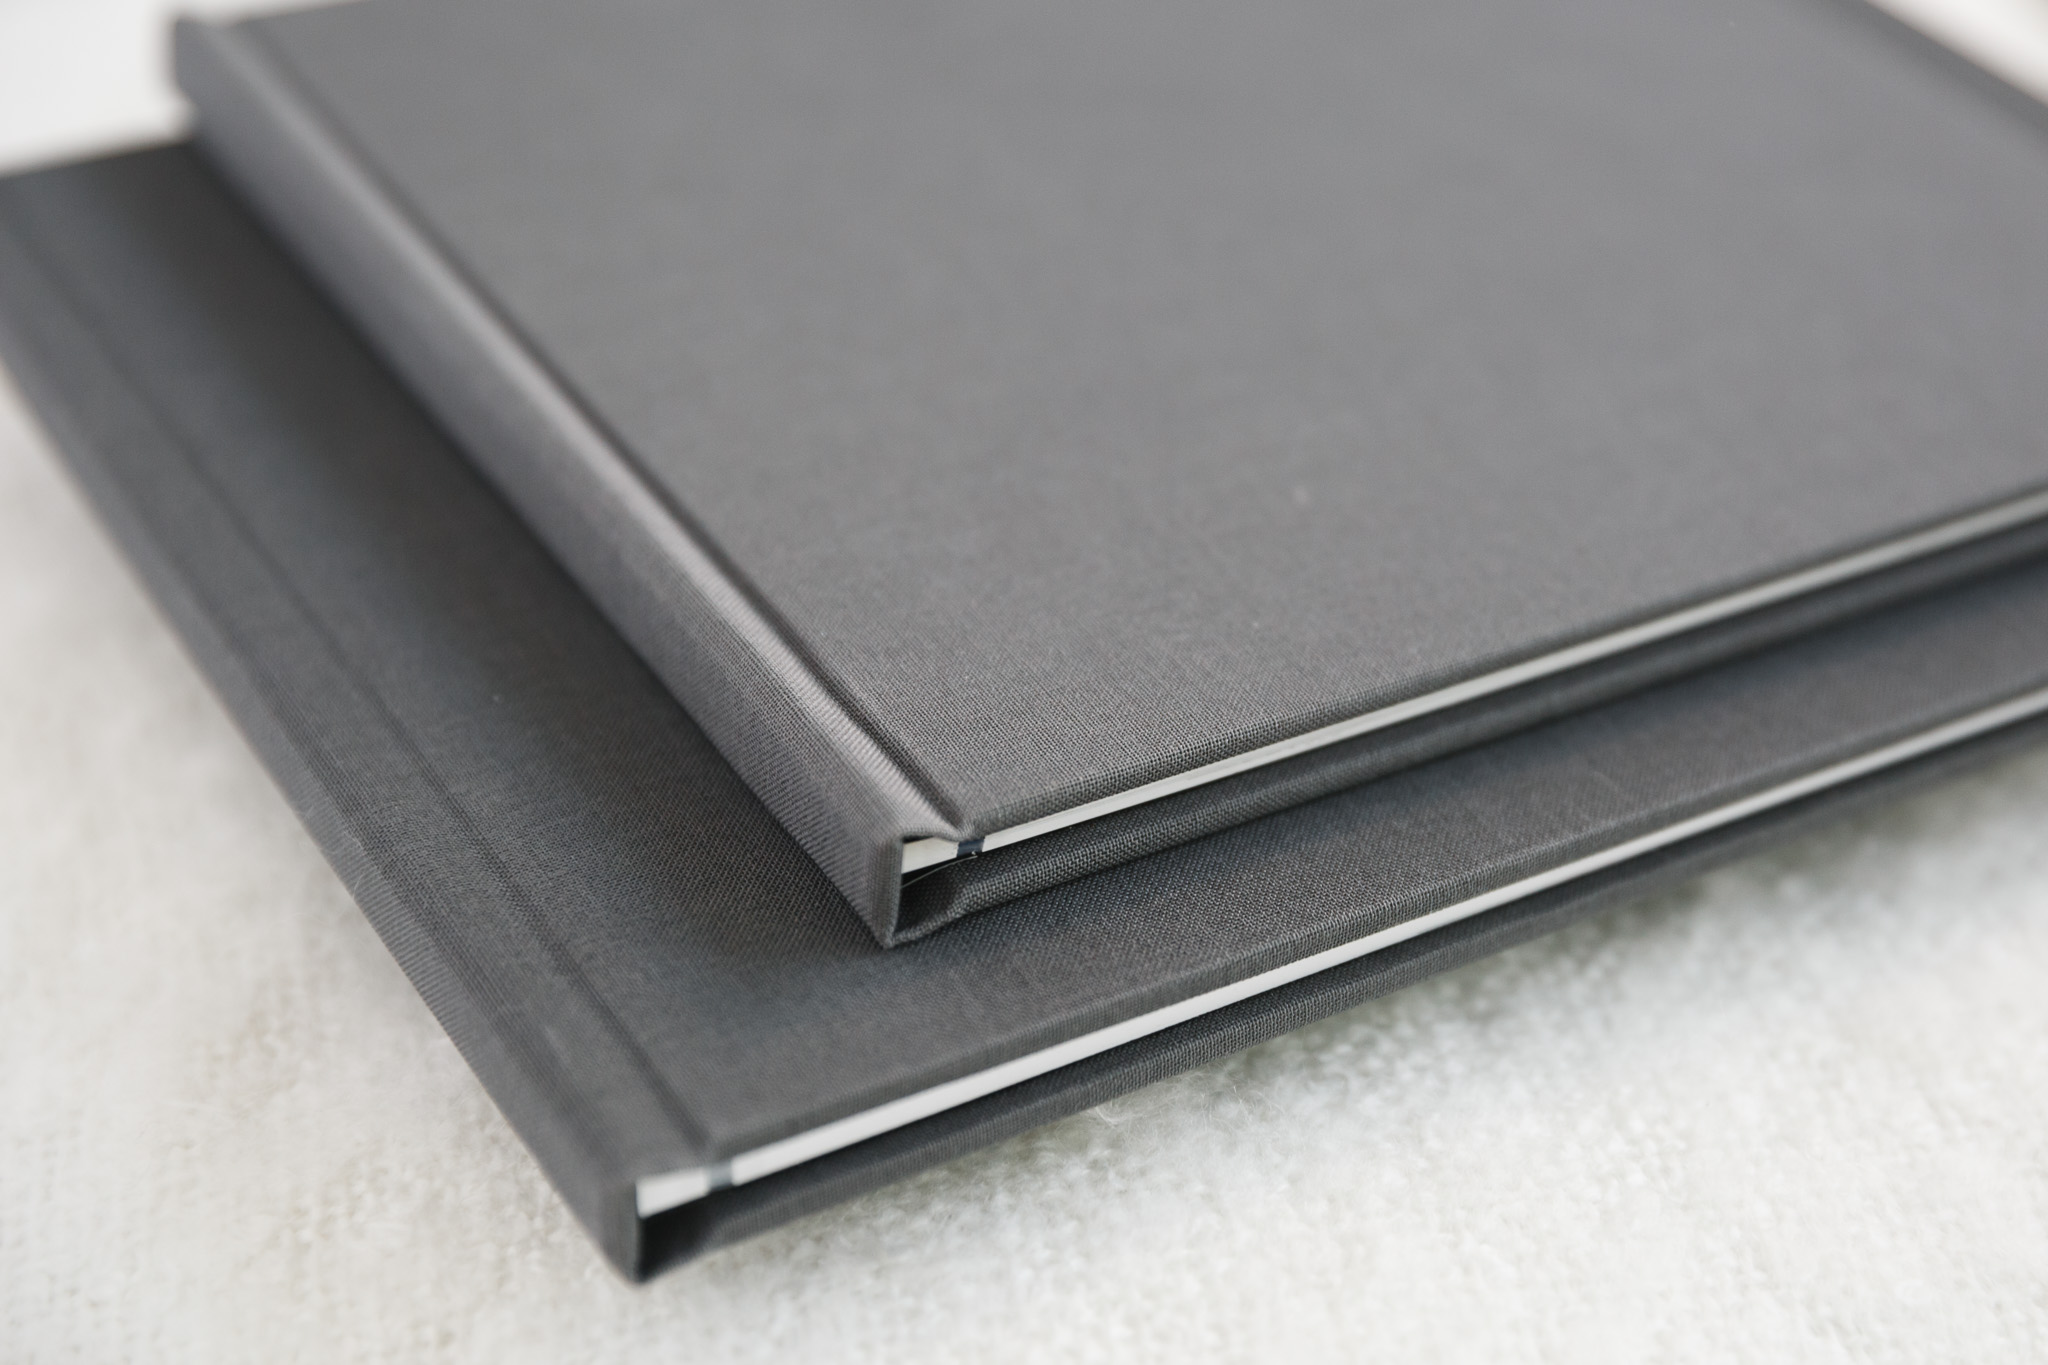 Copy of signature books with grey fabric cover